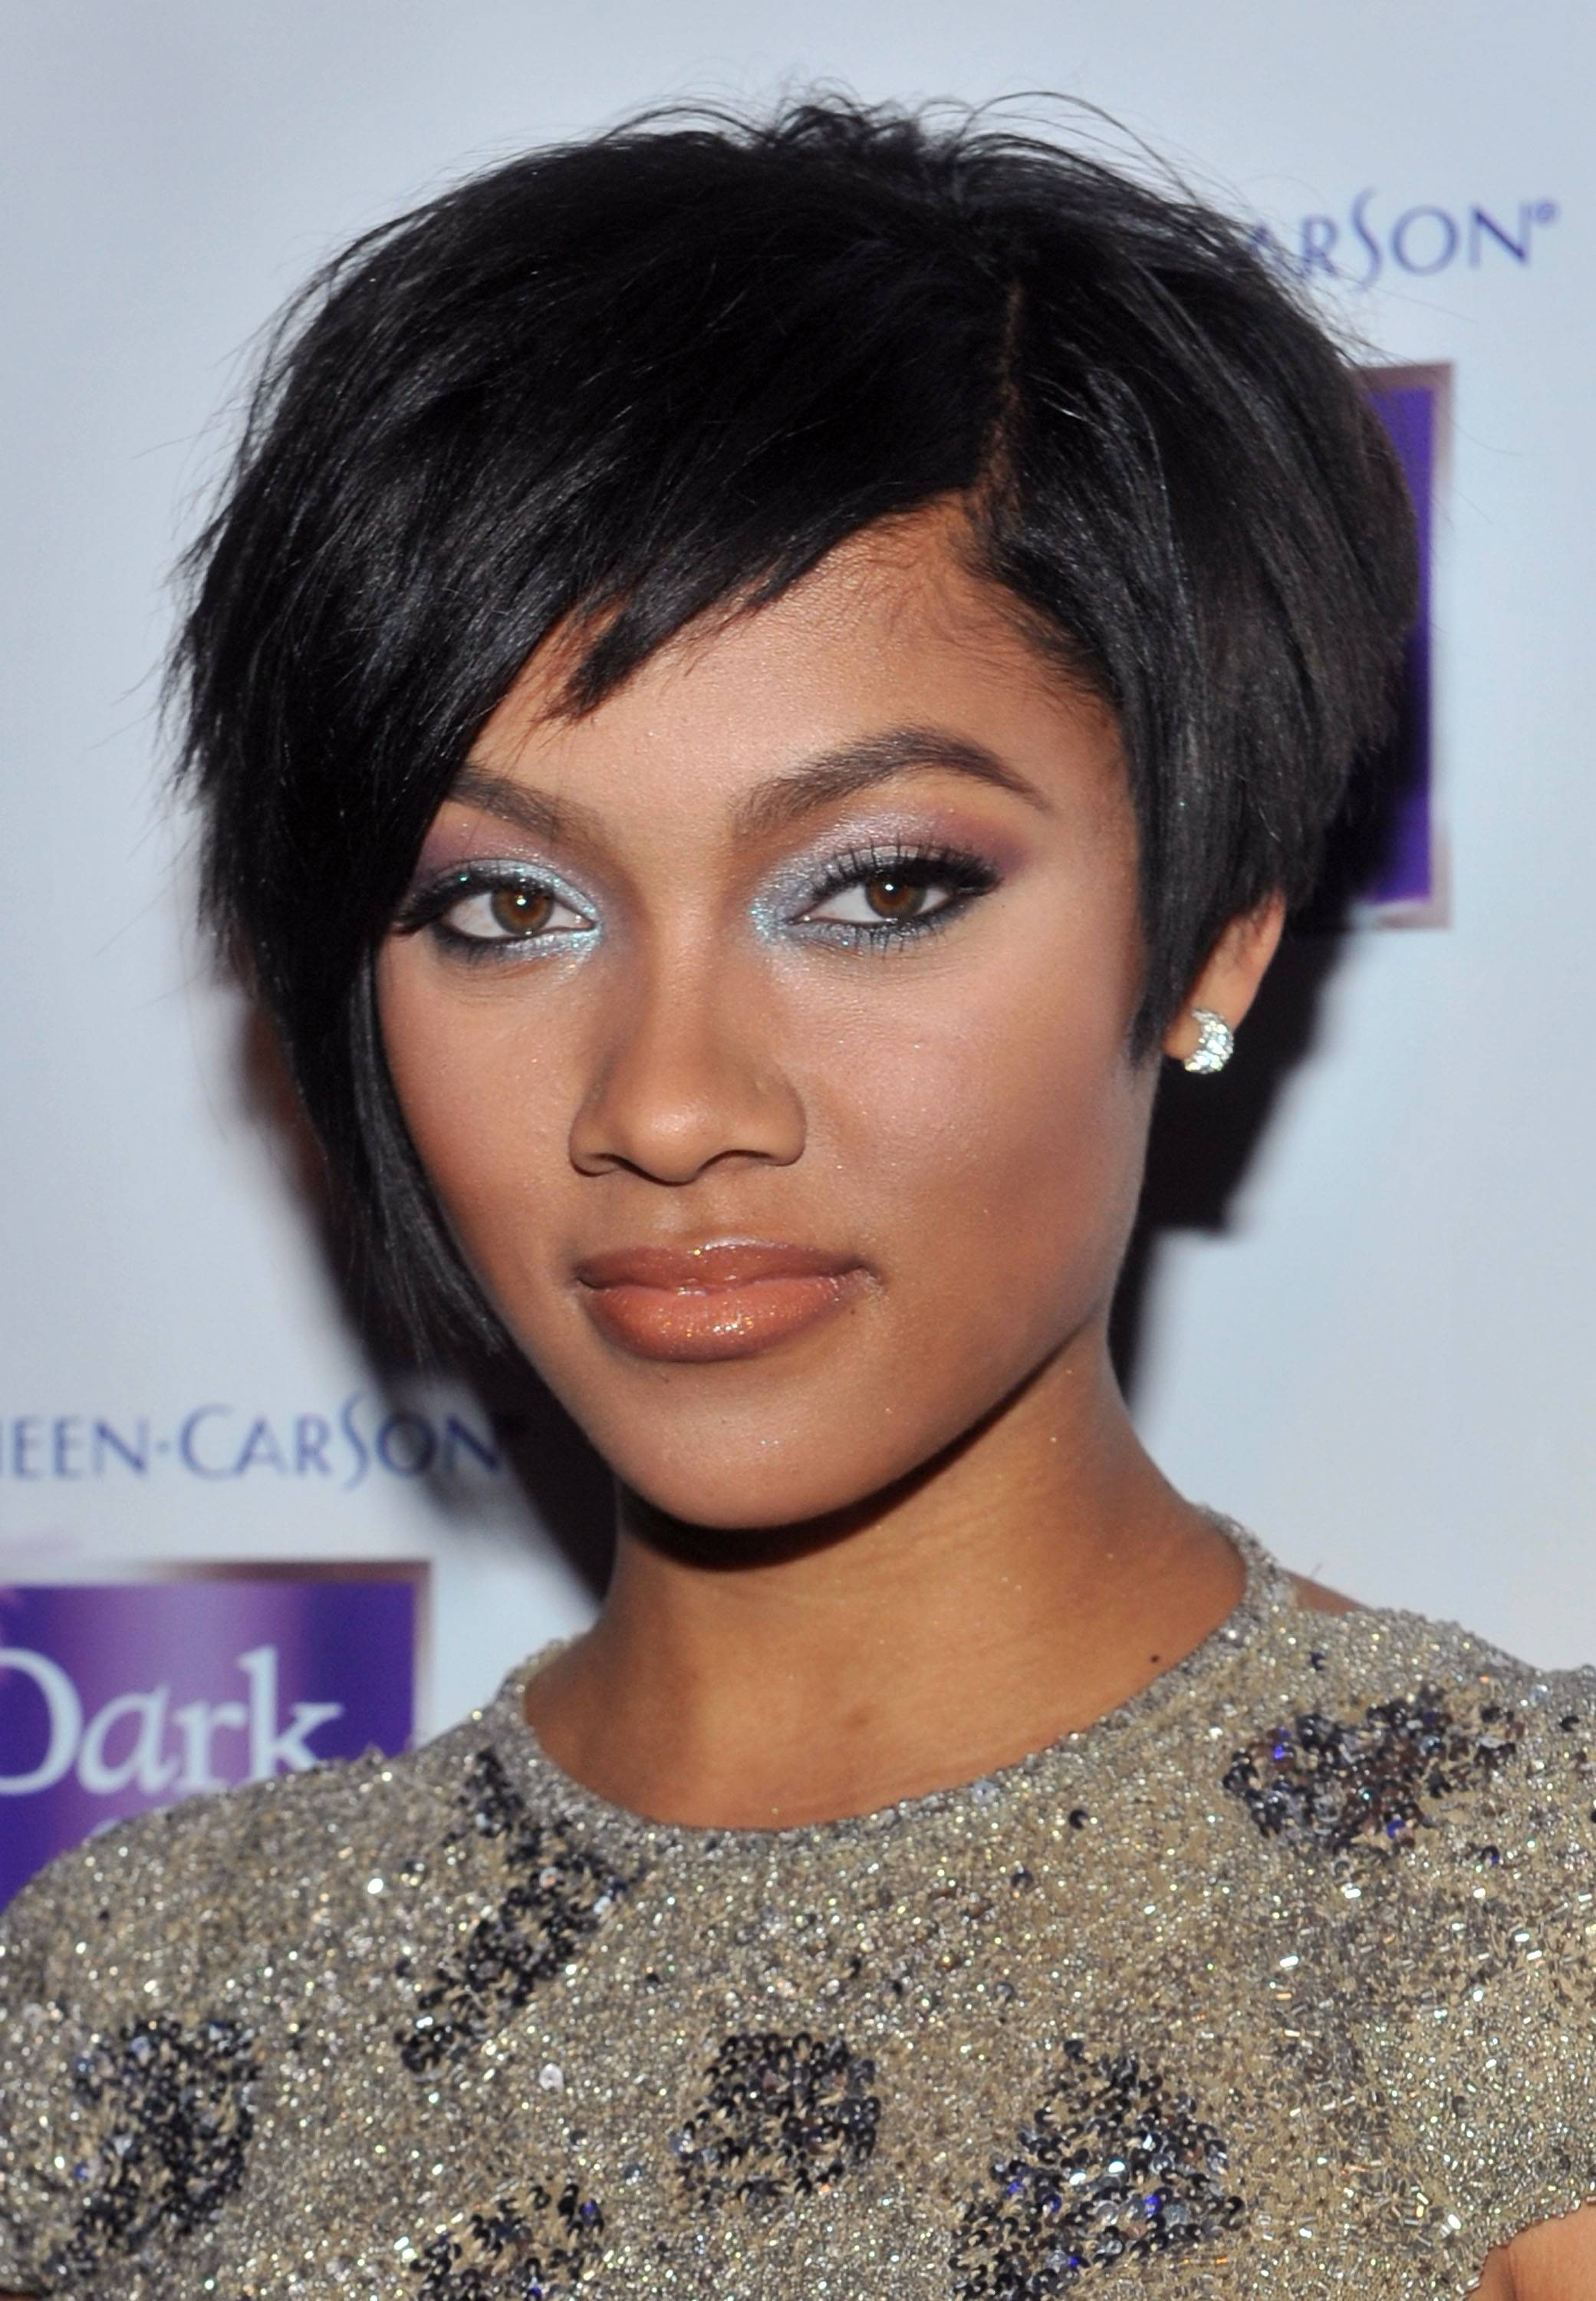 Sensational 8 Astounding Short Natural Hairstyles For Black Women With Round Hairstyles For Women Draintrainus